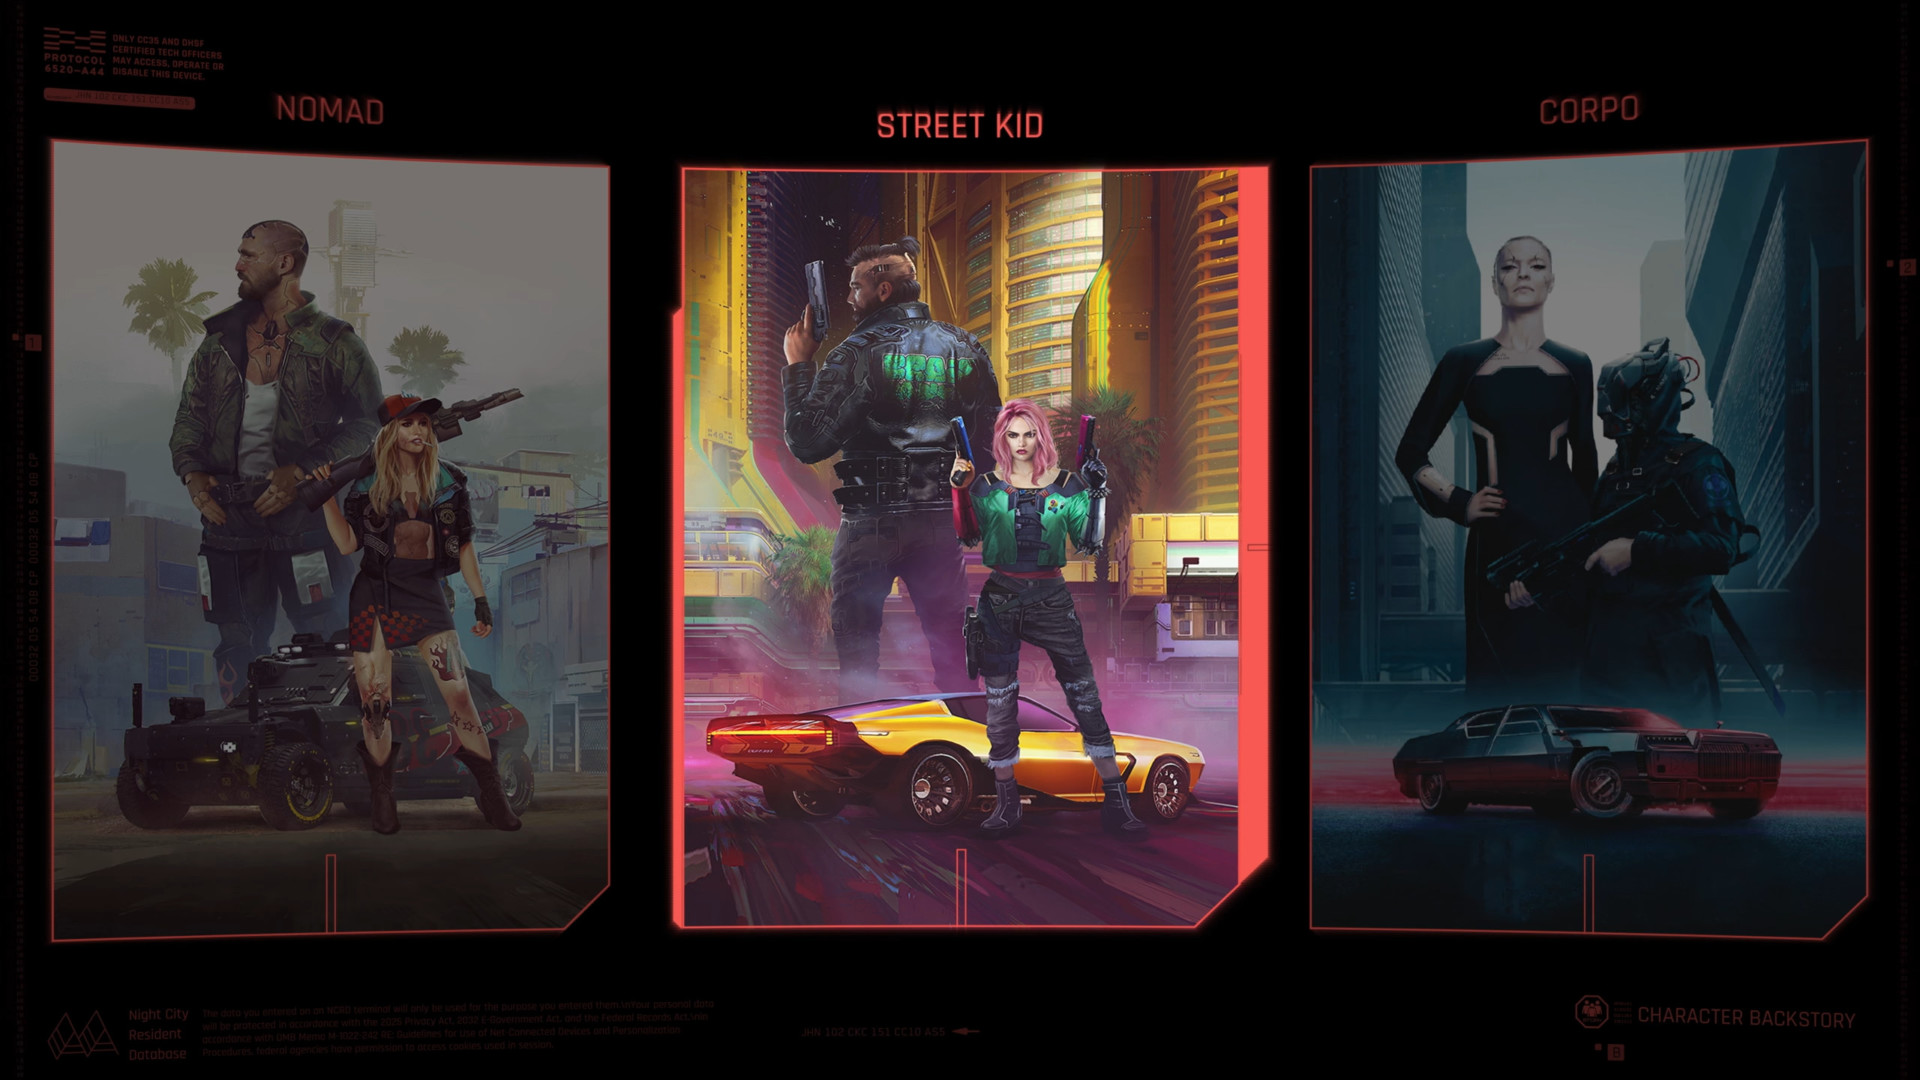 Cyberpunk 2077 Big City Dreams digital comic comes with GOG purchase